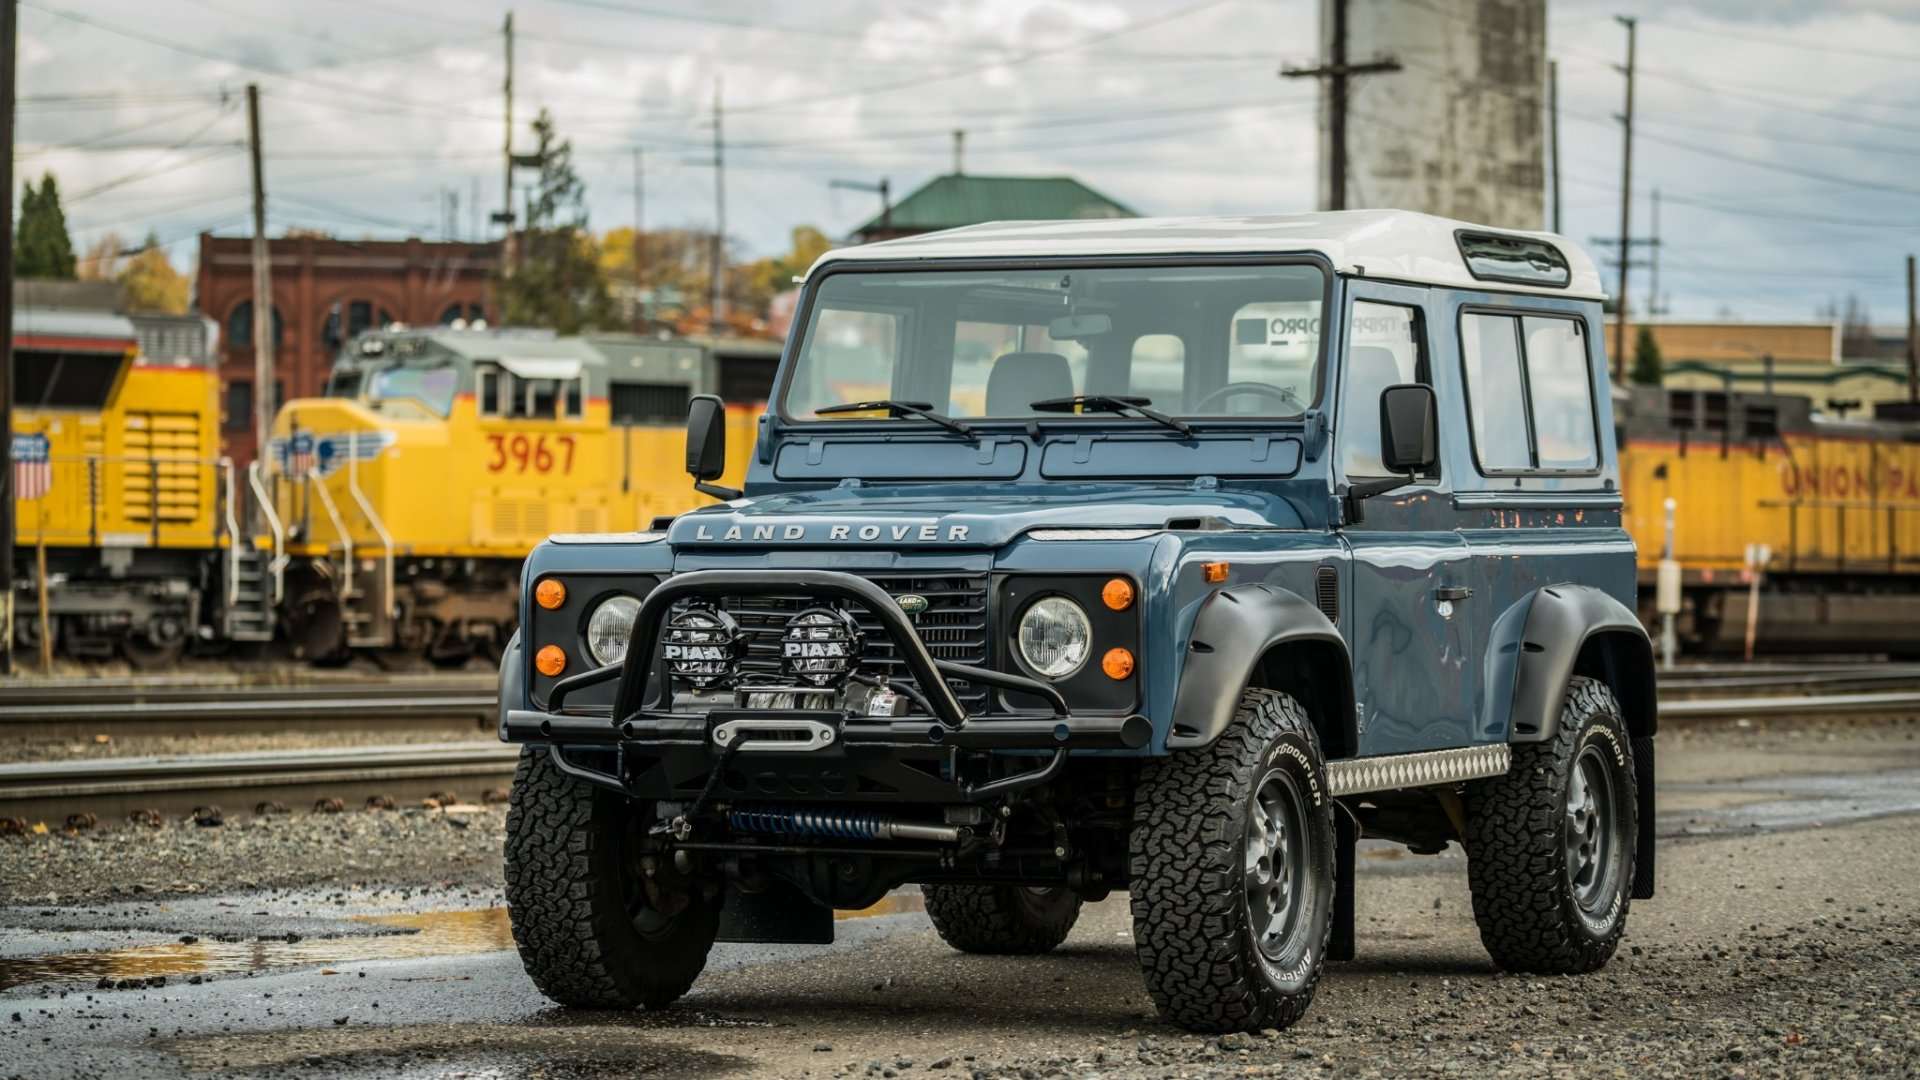 Veículos - Land Rover Defender  Land Rover Defender 90 Off-Road Blue Car Old Car Carro Papel de Parede